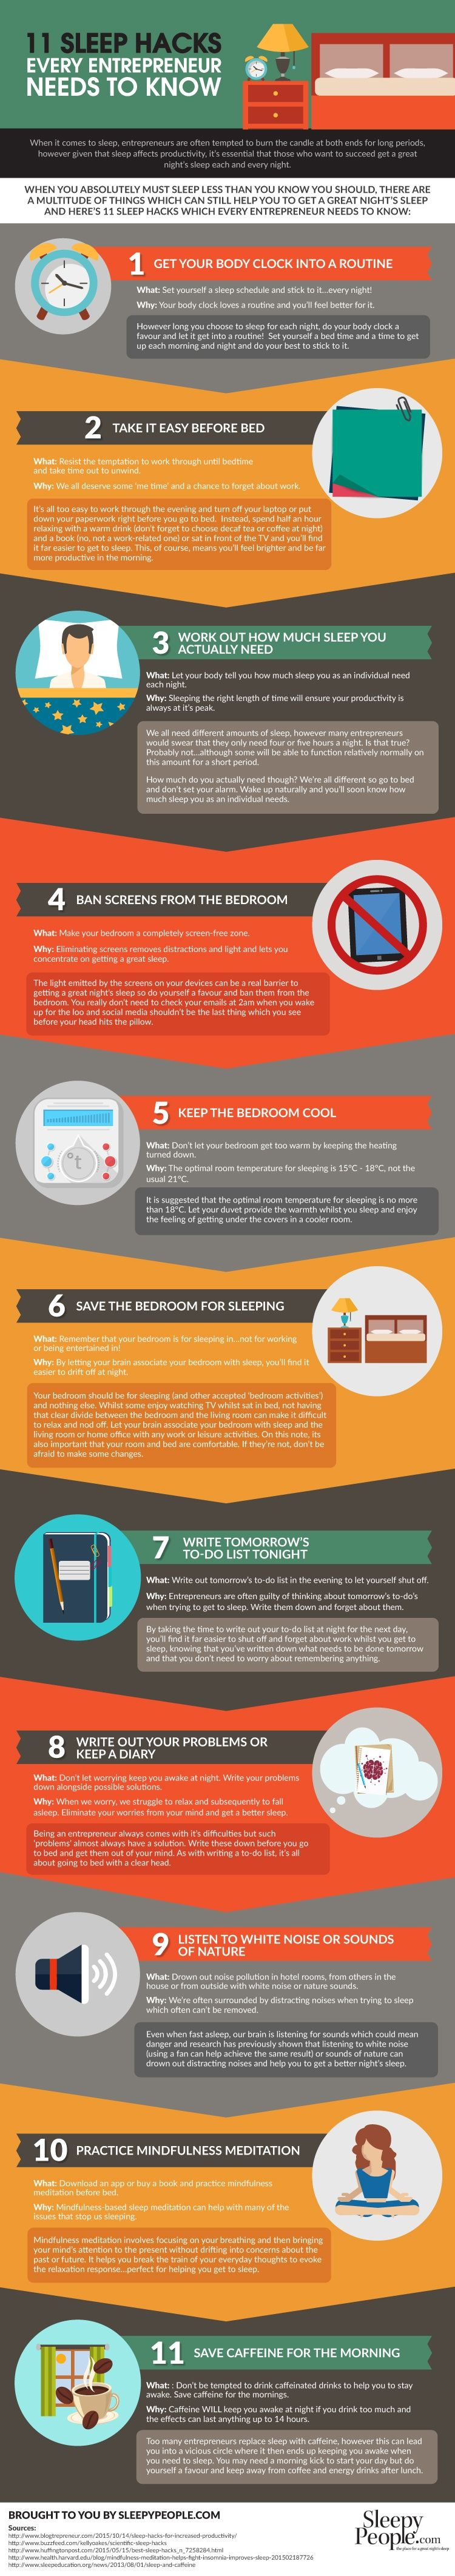 The secrets of sleep that you don't know about.